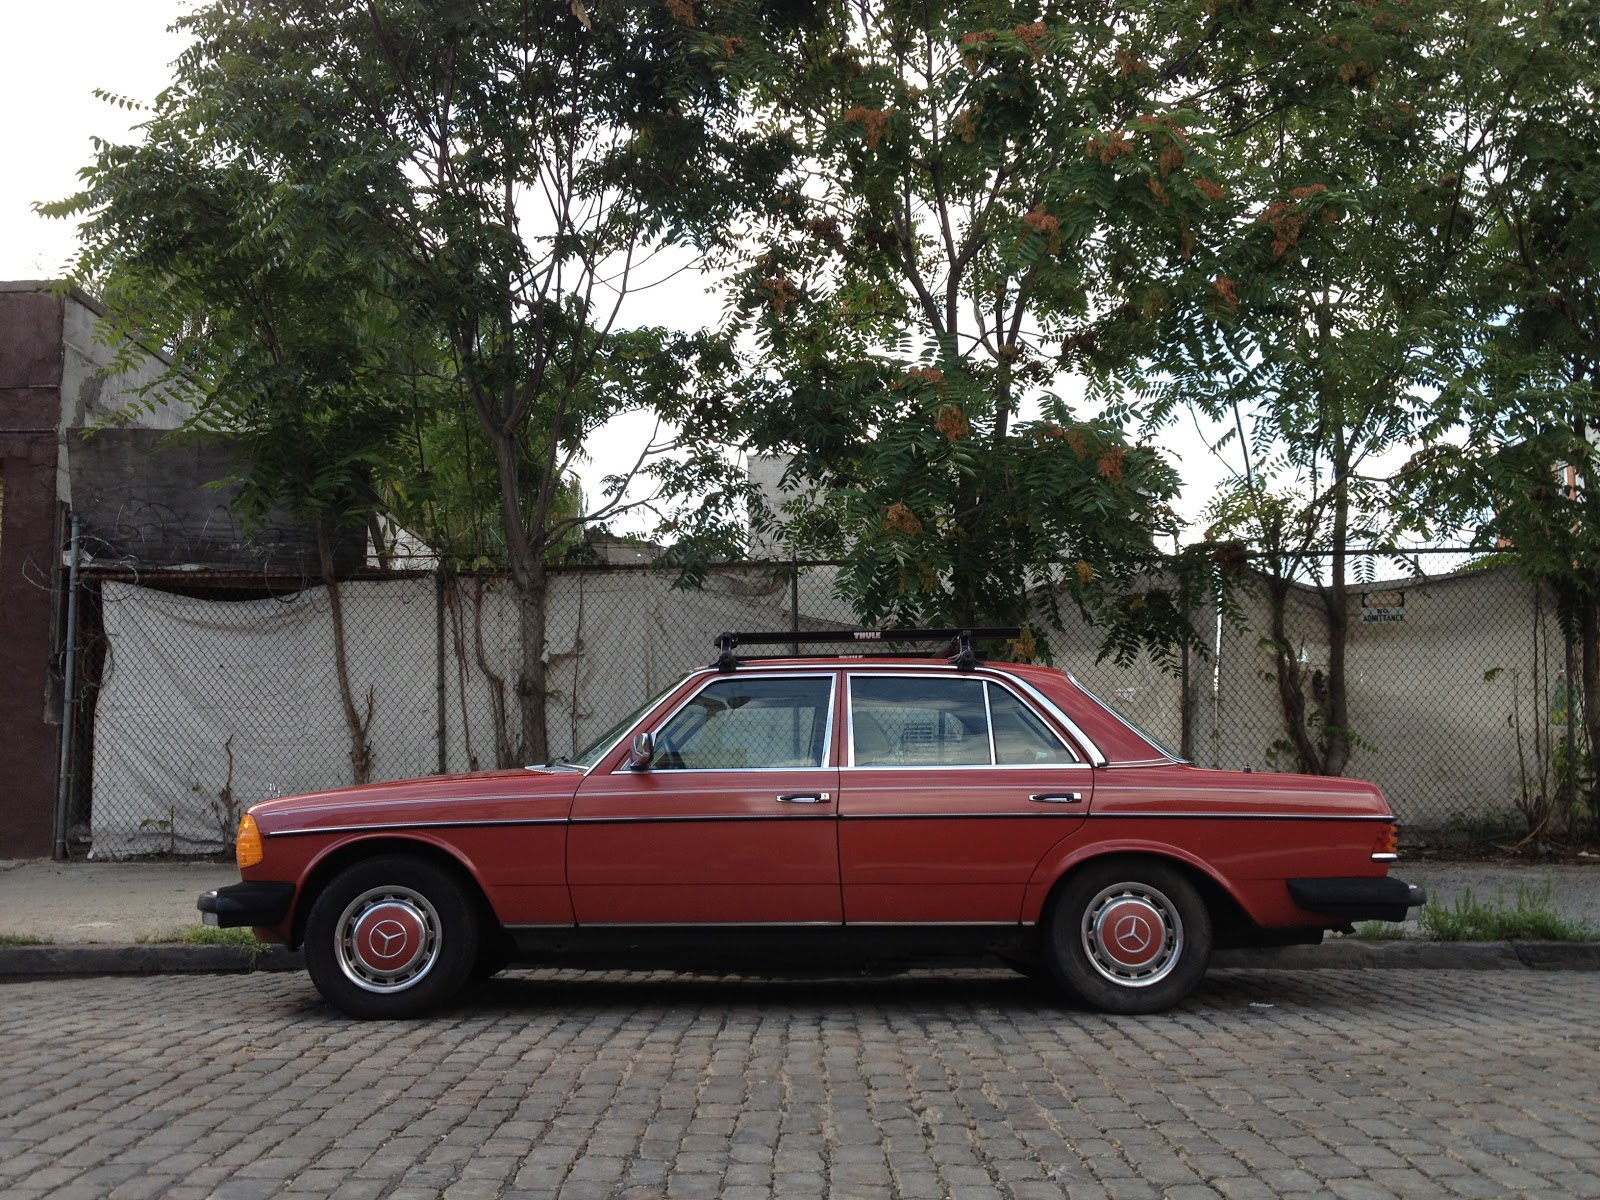 Cscb home 1982 mercedes benz 300d turbo diesel for Mercedes benz turbo diesel